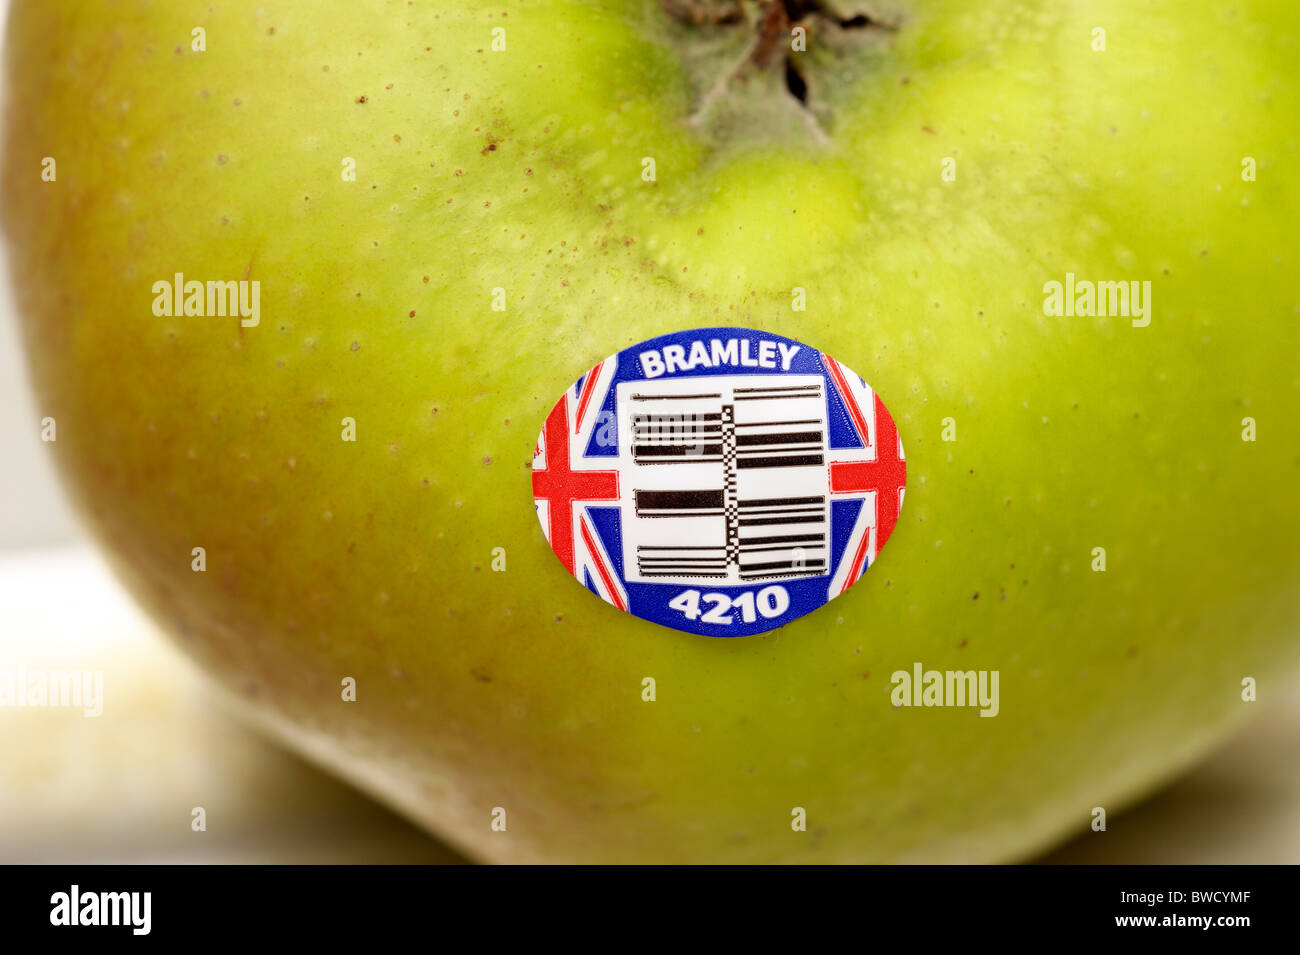 bramley cooking apple with a British Union Jack logo sign - Stock Image